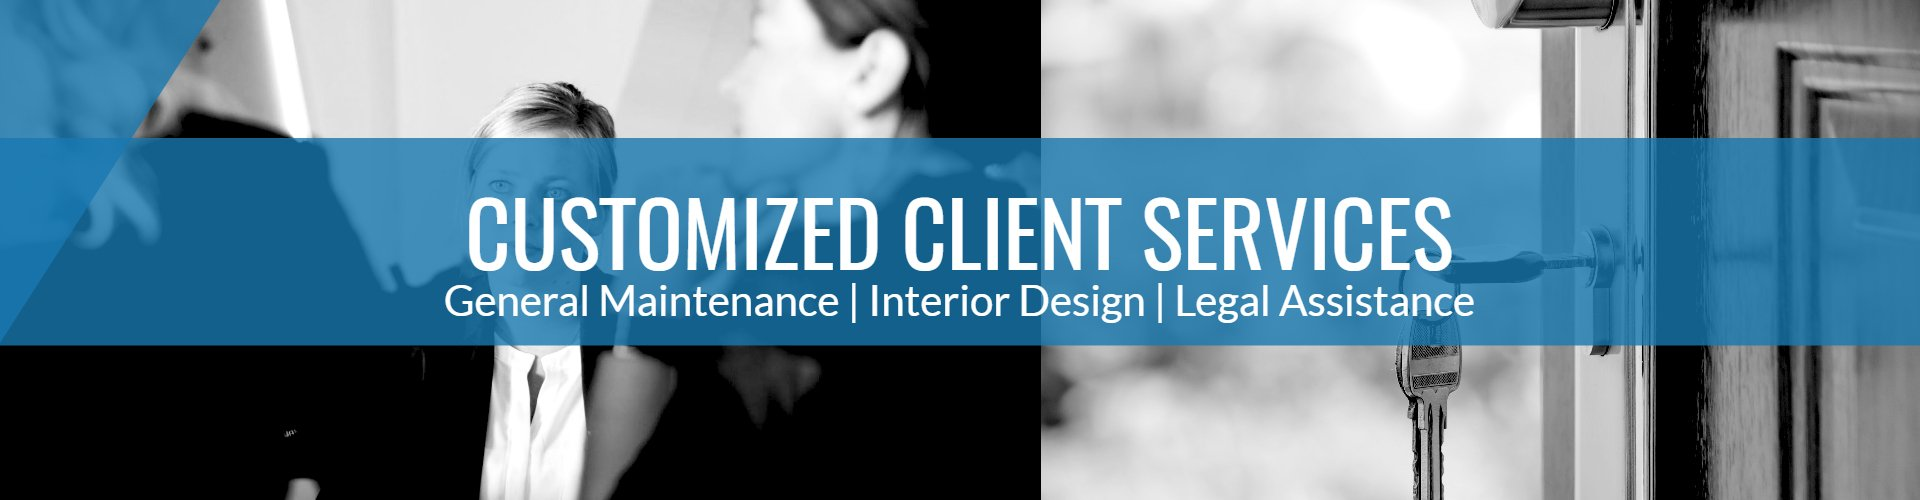 Customized Client Services